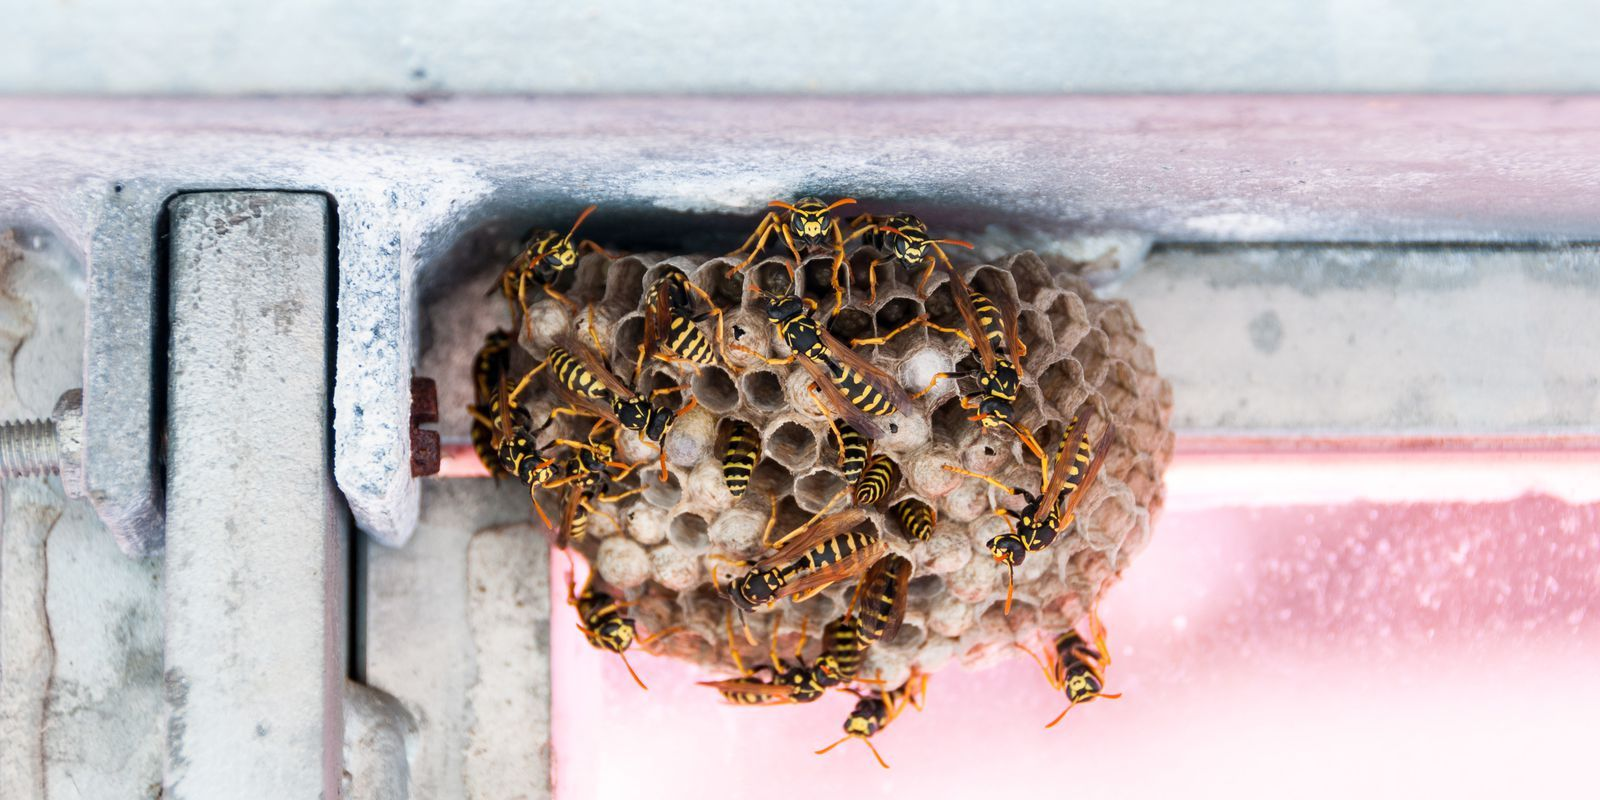 How to Get Rid of Insects and Pests Insects, Insect pest